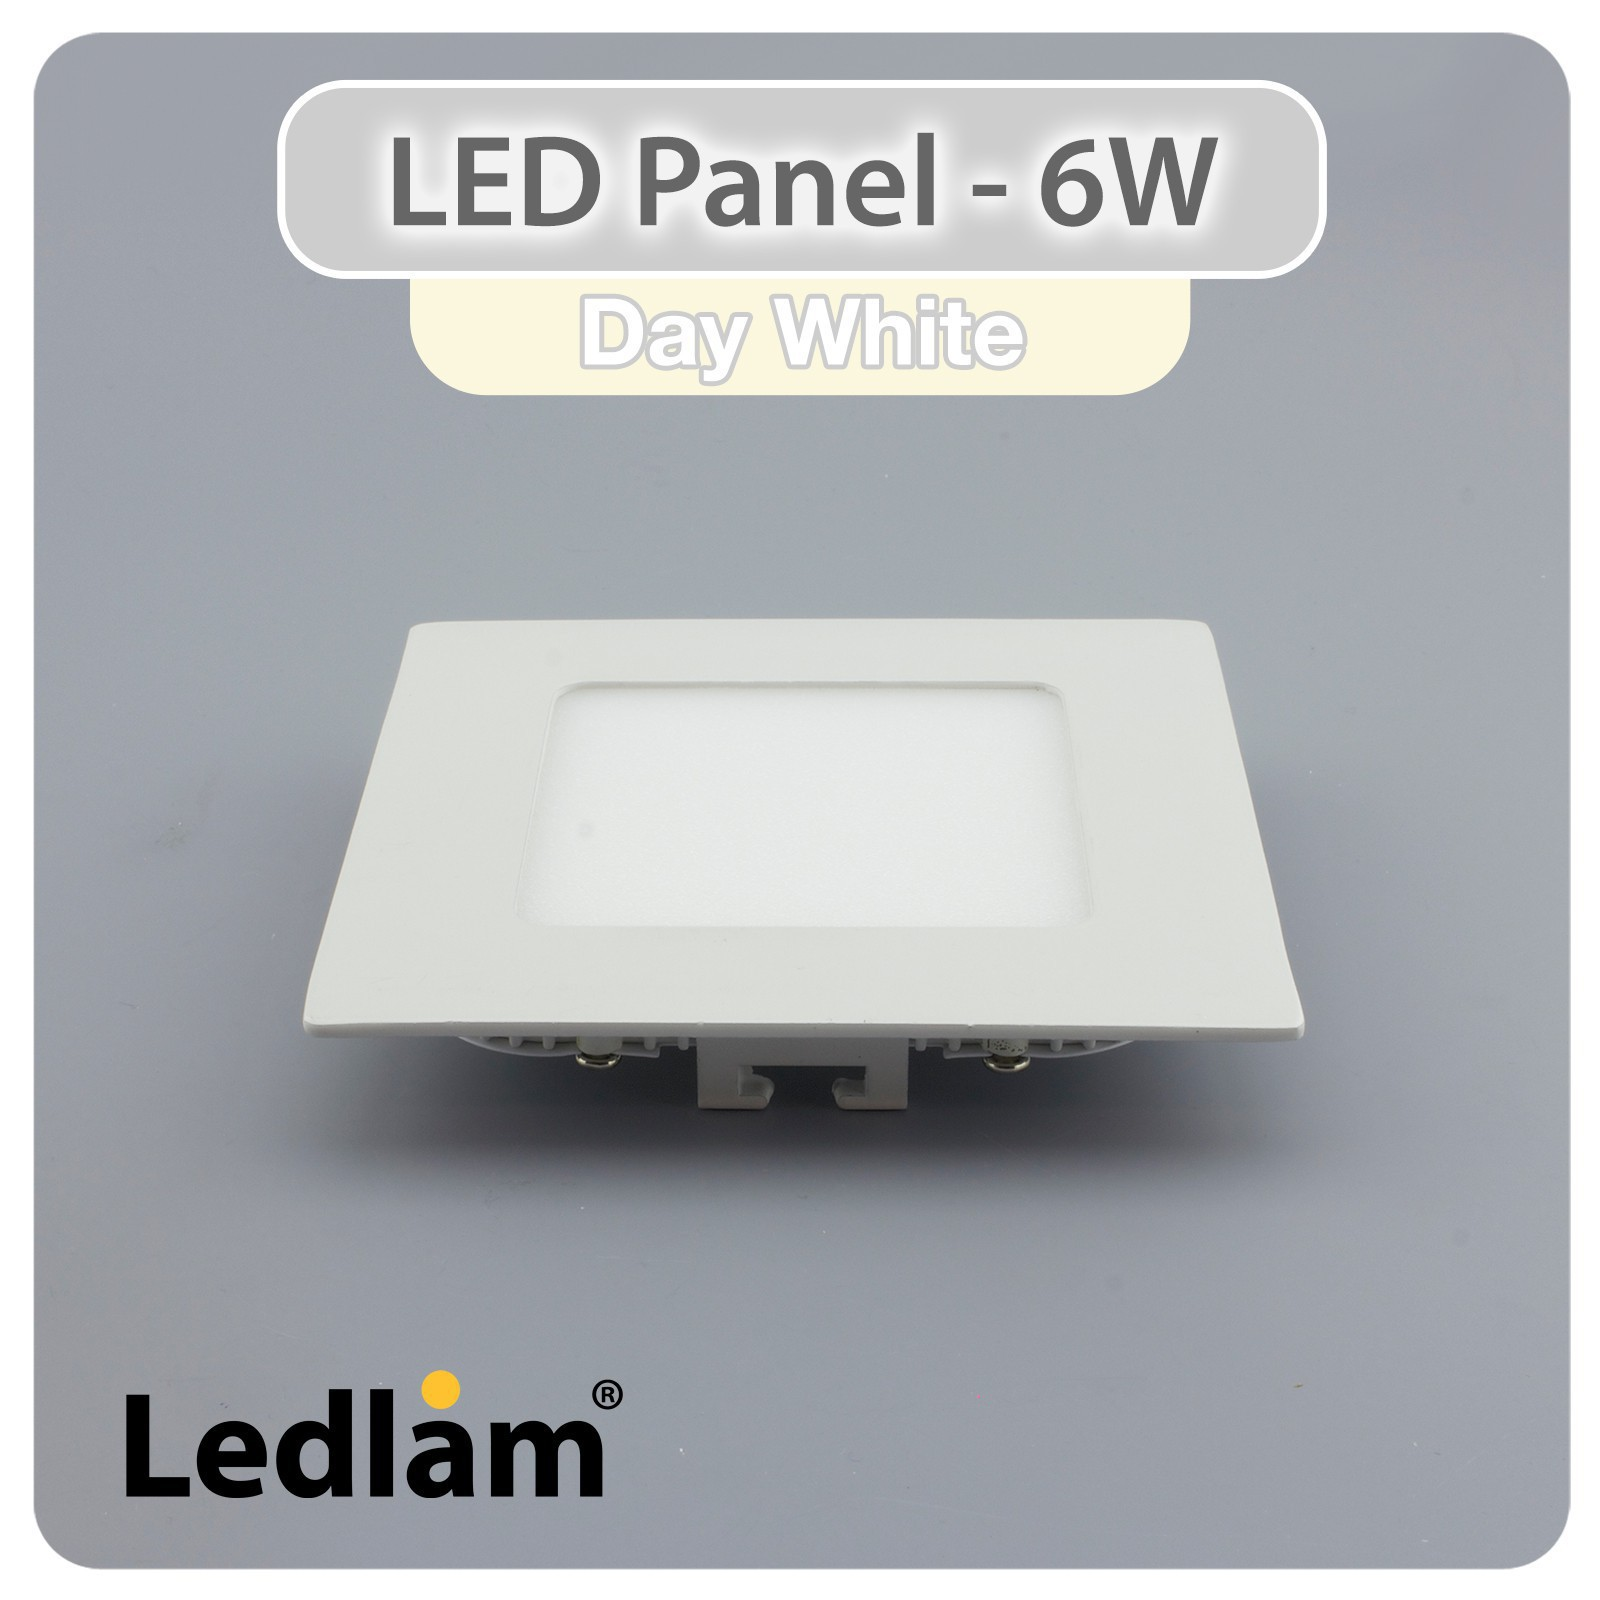 10er set led panel weiss quadratisch 12 x 12cm 6 watt neutralwei. Black Bedroom Furniture Sets. Home Design Ideas